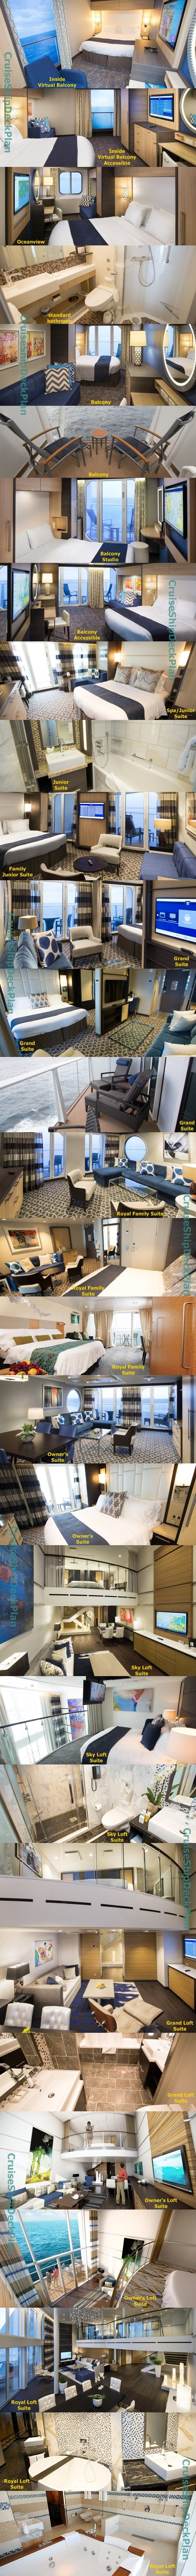 Royal Caribbean Ovation of the Seas cabins and suites photos